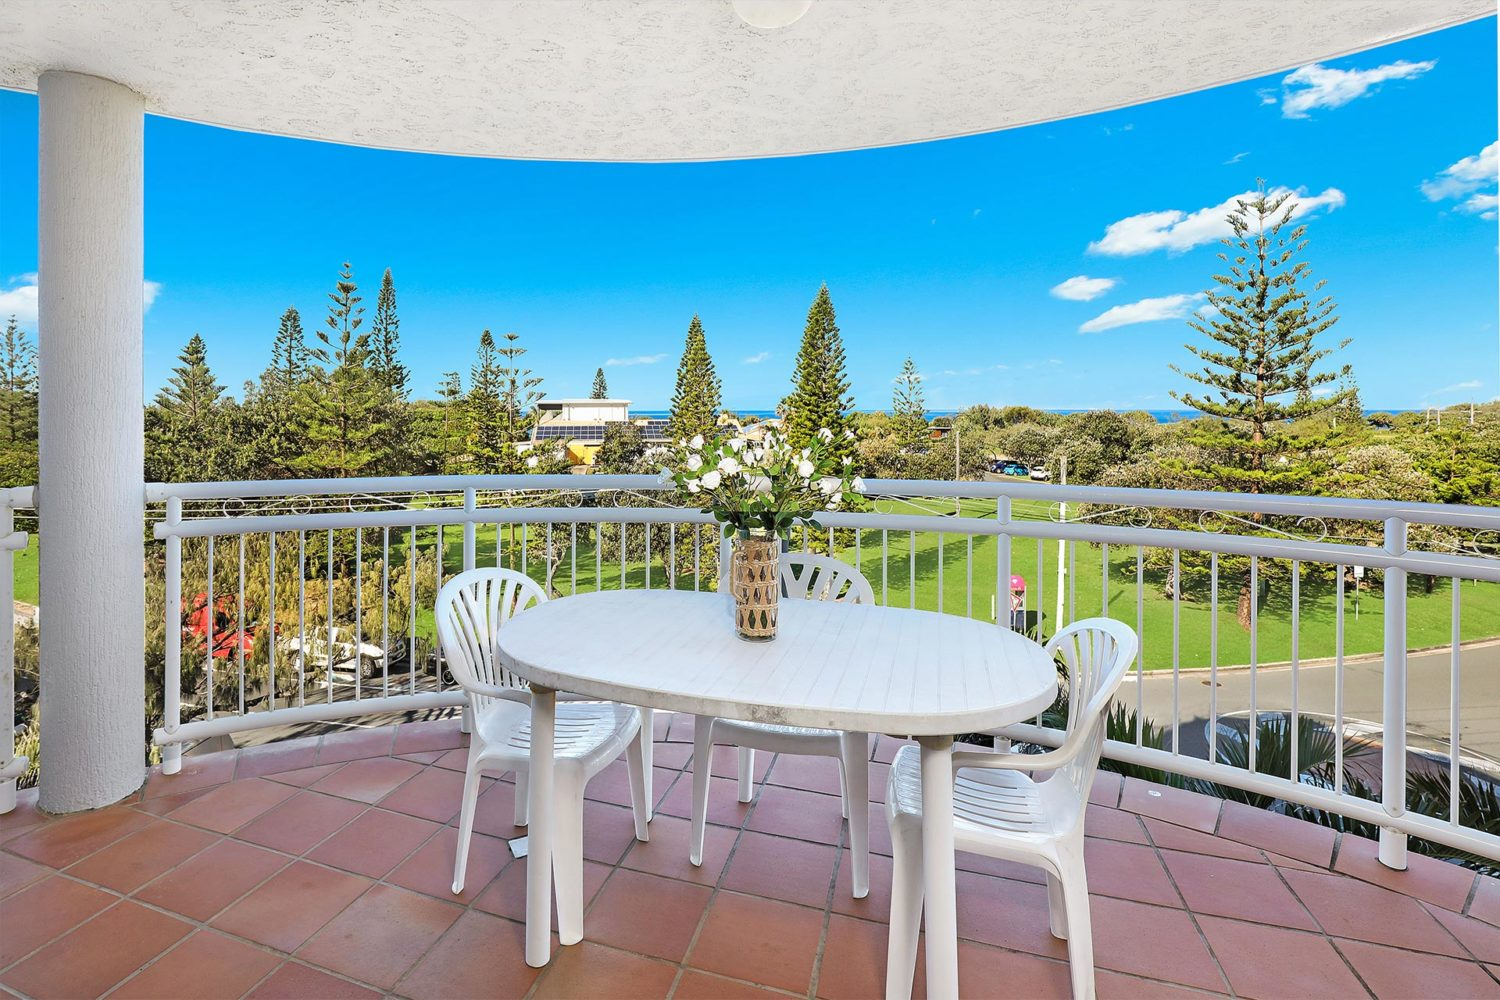 facilities-beachside-buddina-accommodation-kawana16